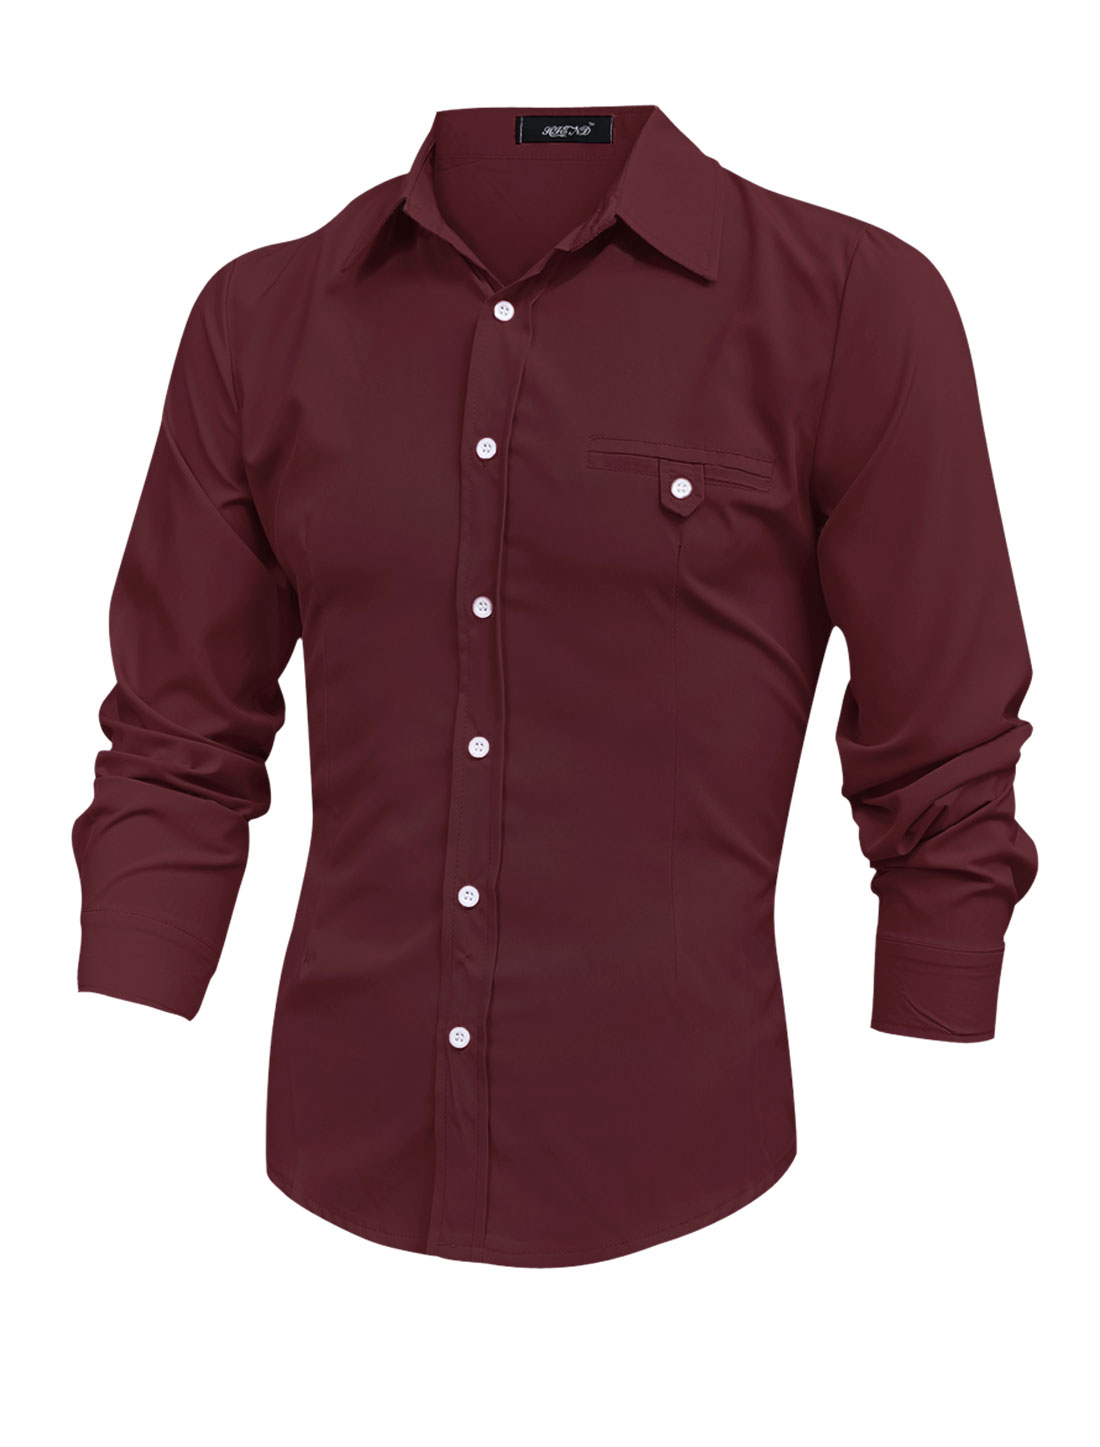 Men Long Sleeve Button Up Mock Welt Button Pocket Shirt Burgundy M